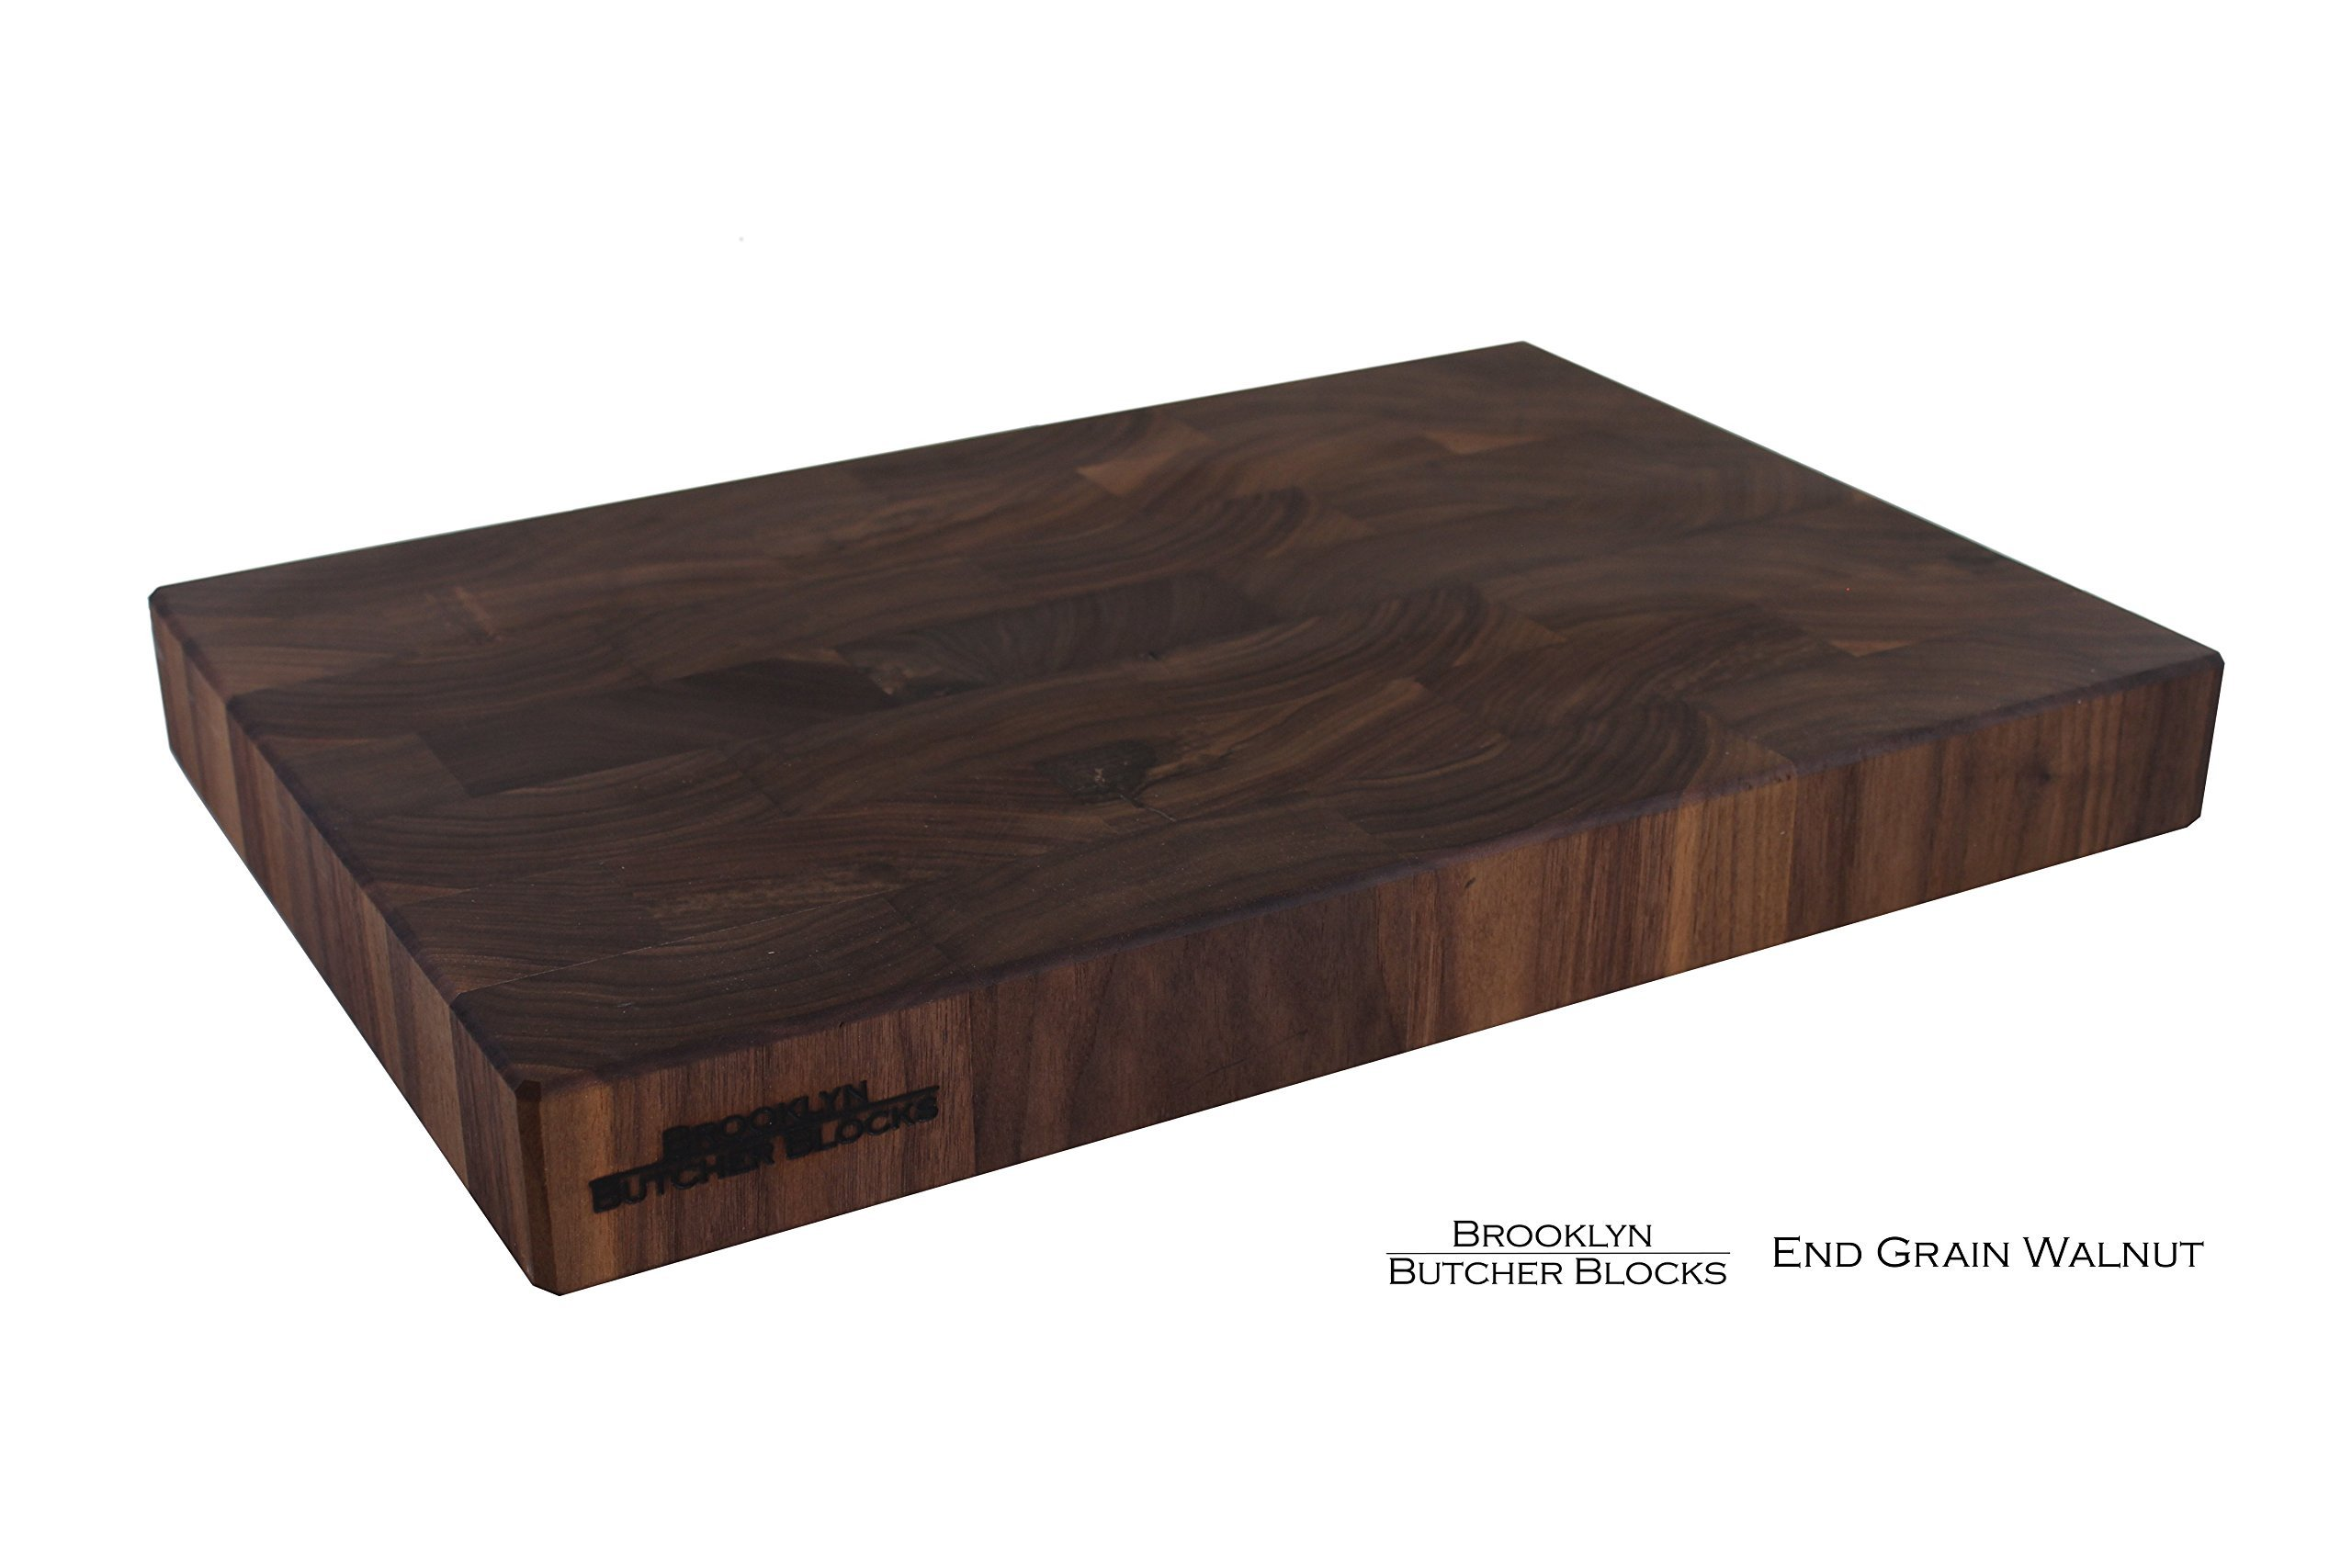 12 x 18 x 2 End Grain Brickwork Butcher Block